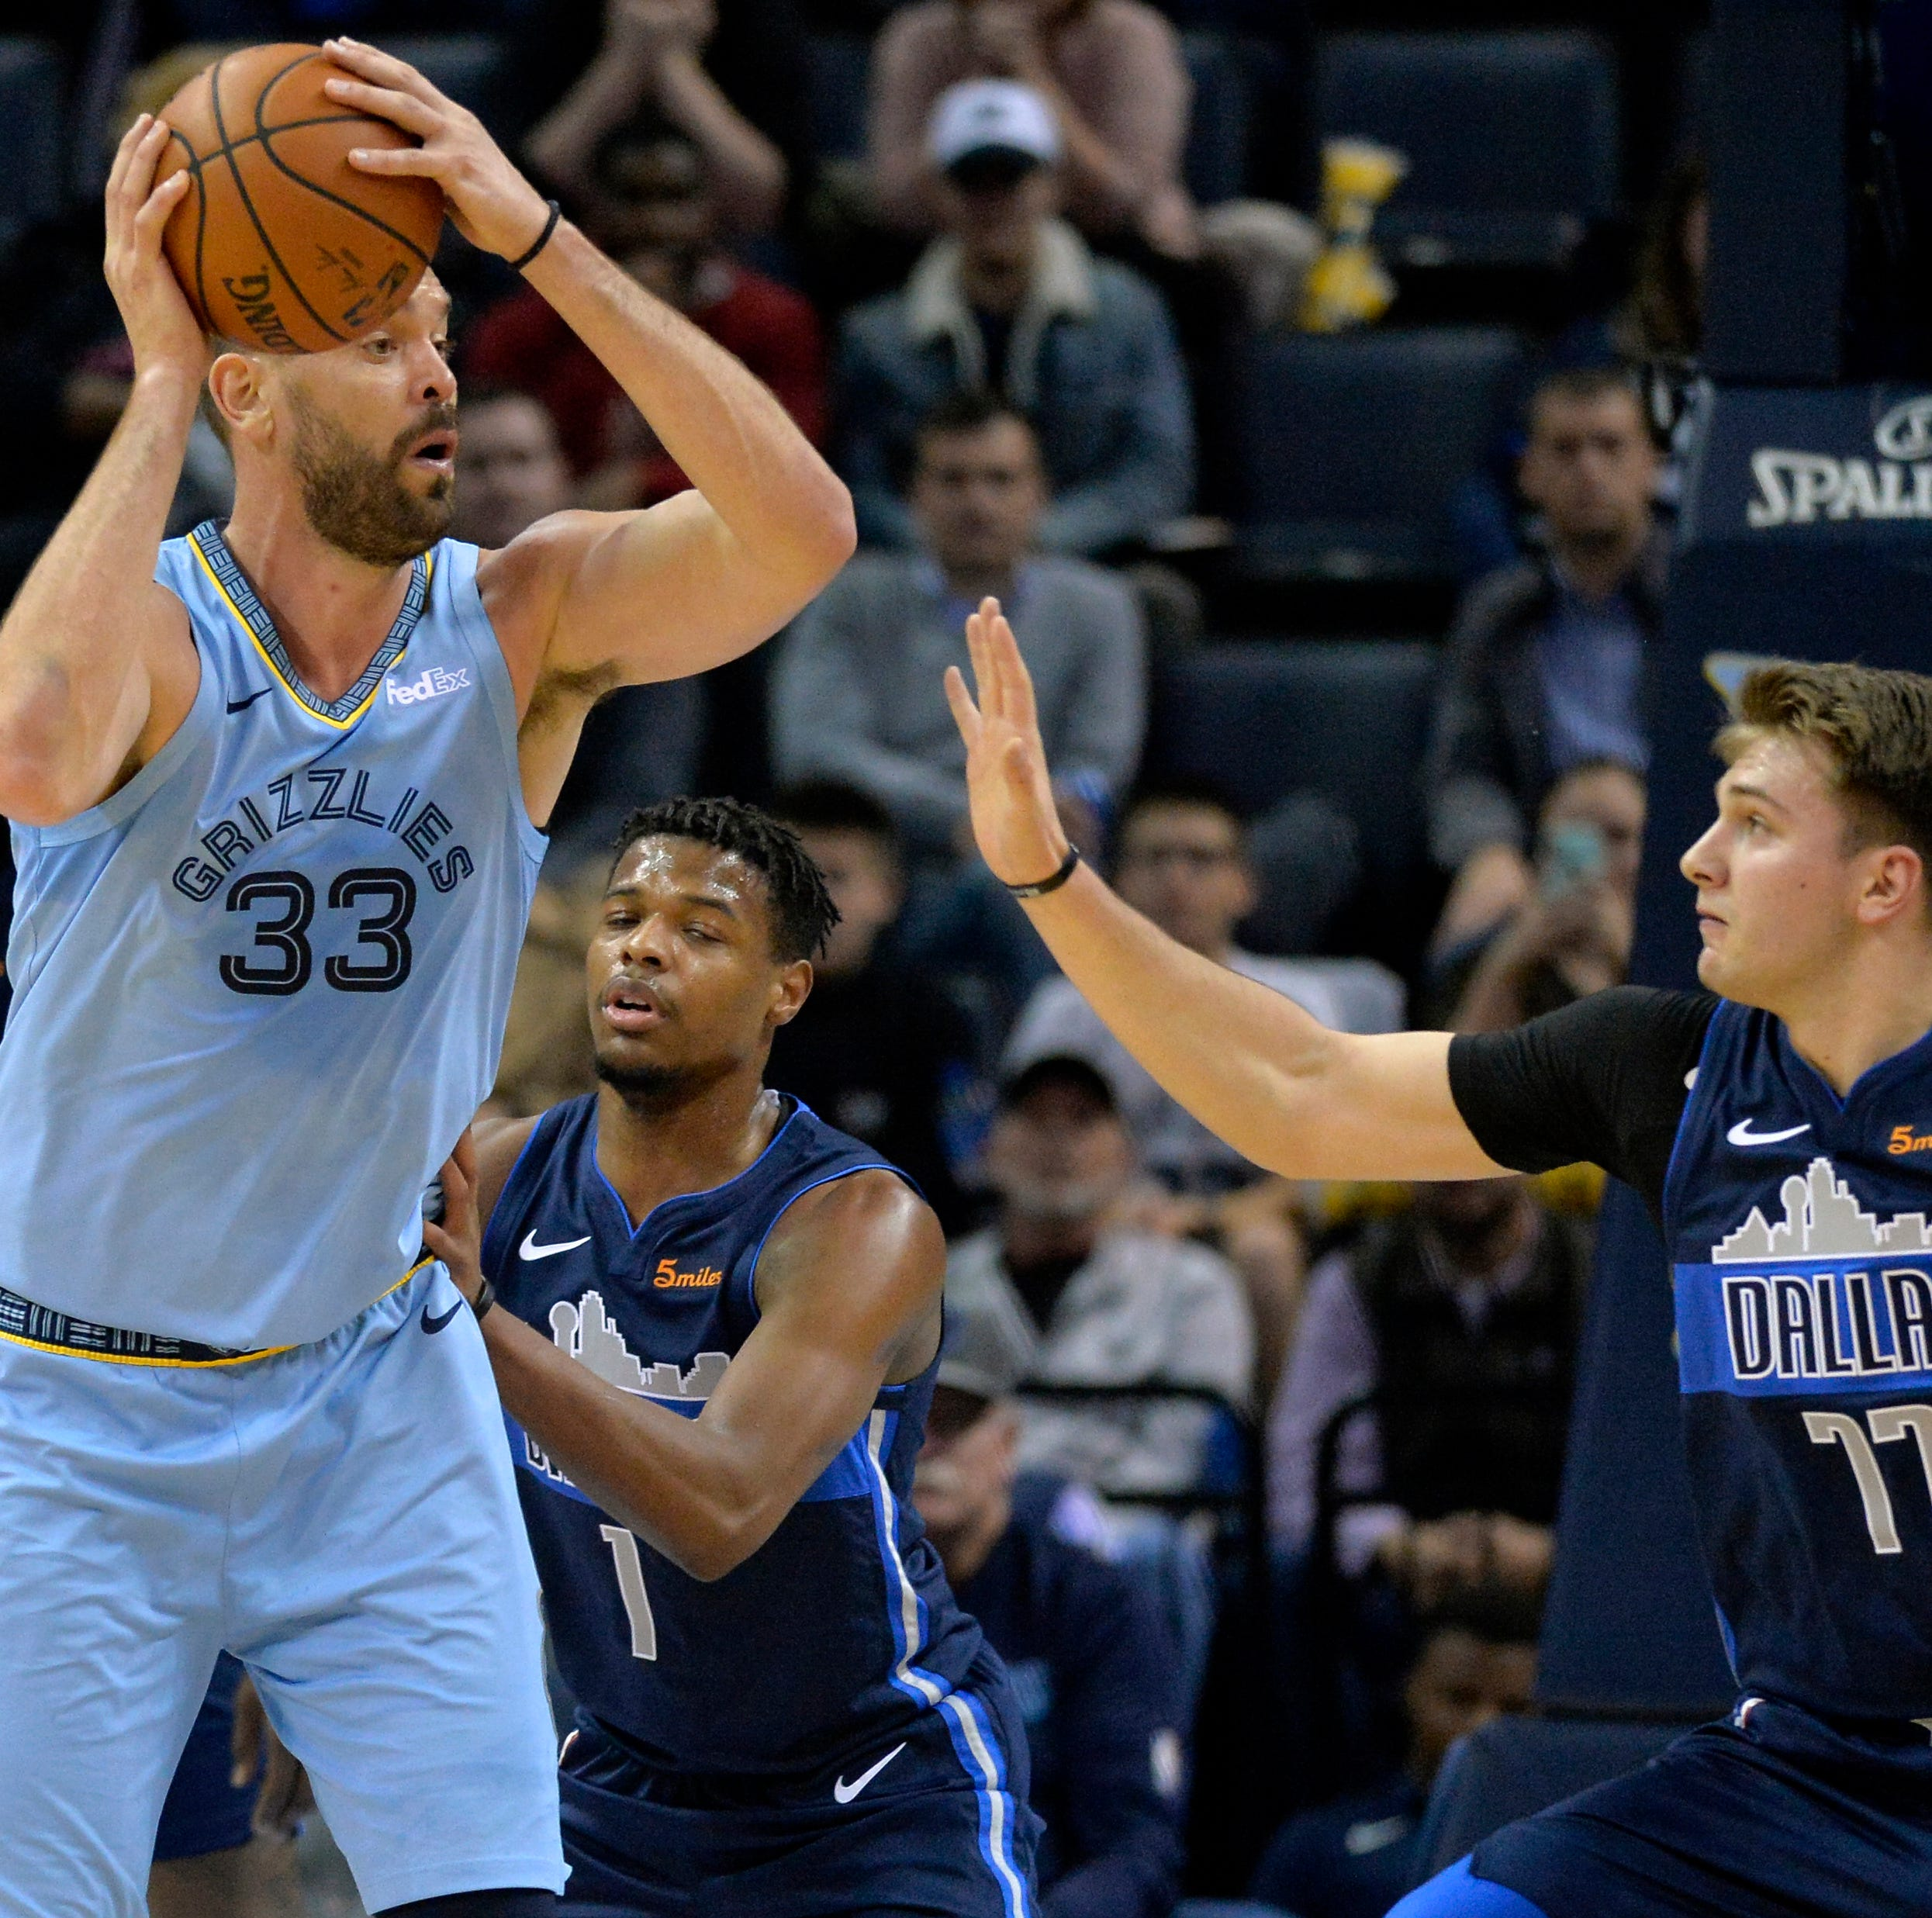 Mike Conley leads Grizzlies past Mavericks to tie for Western Conference lead